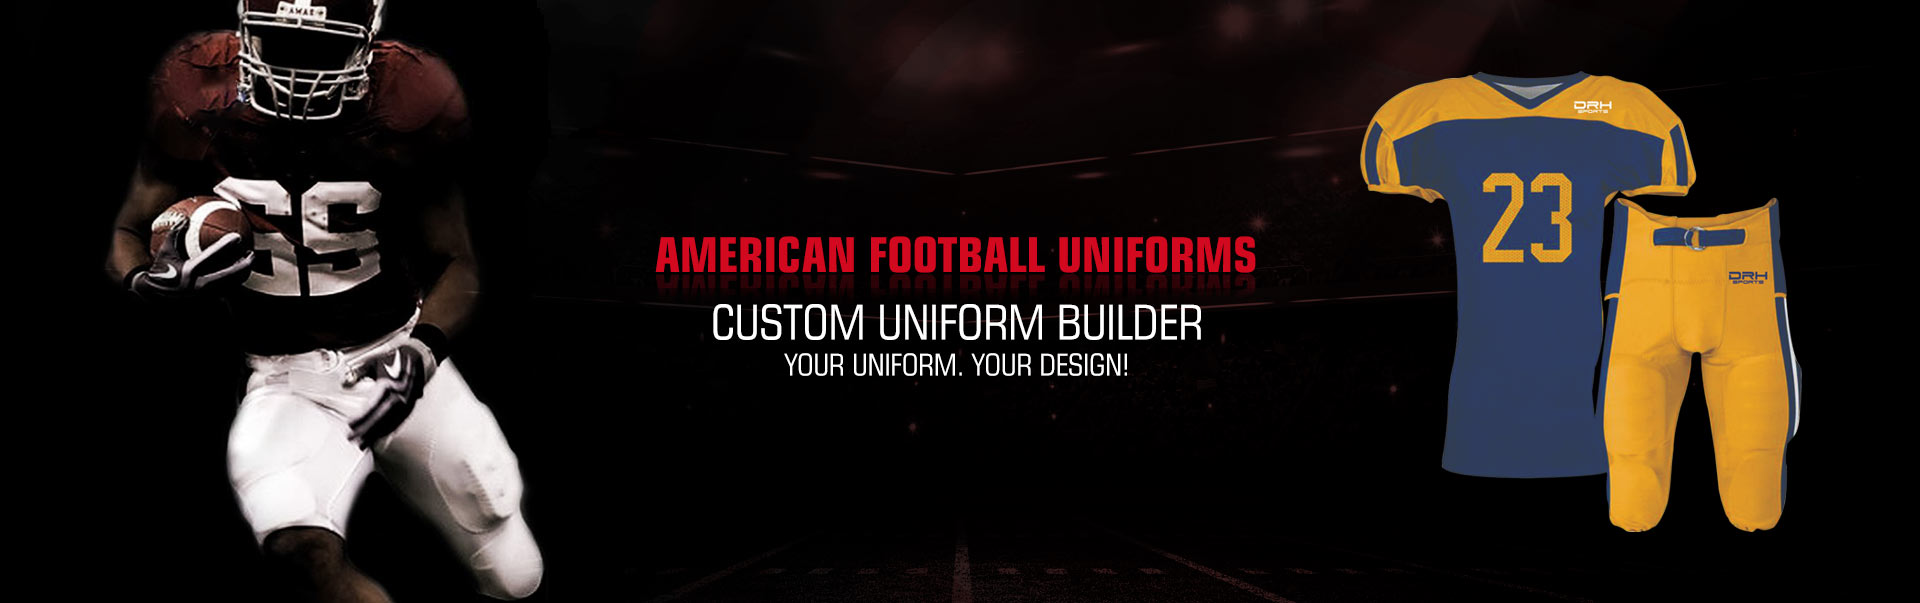 American Football Uniform Wholesaler, Suppliers in Vladikavkaz